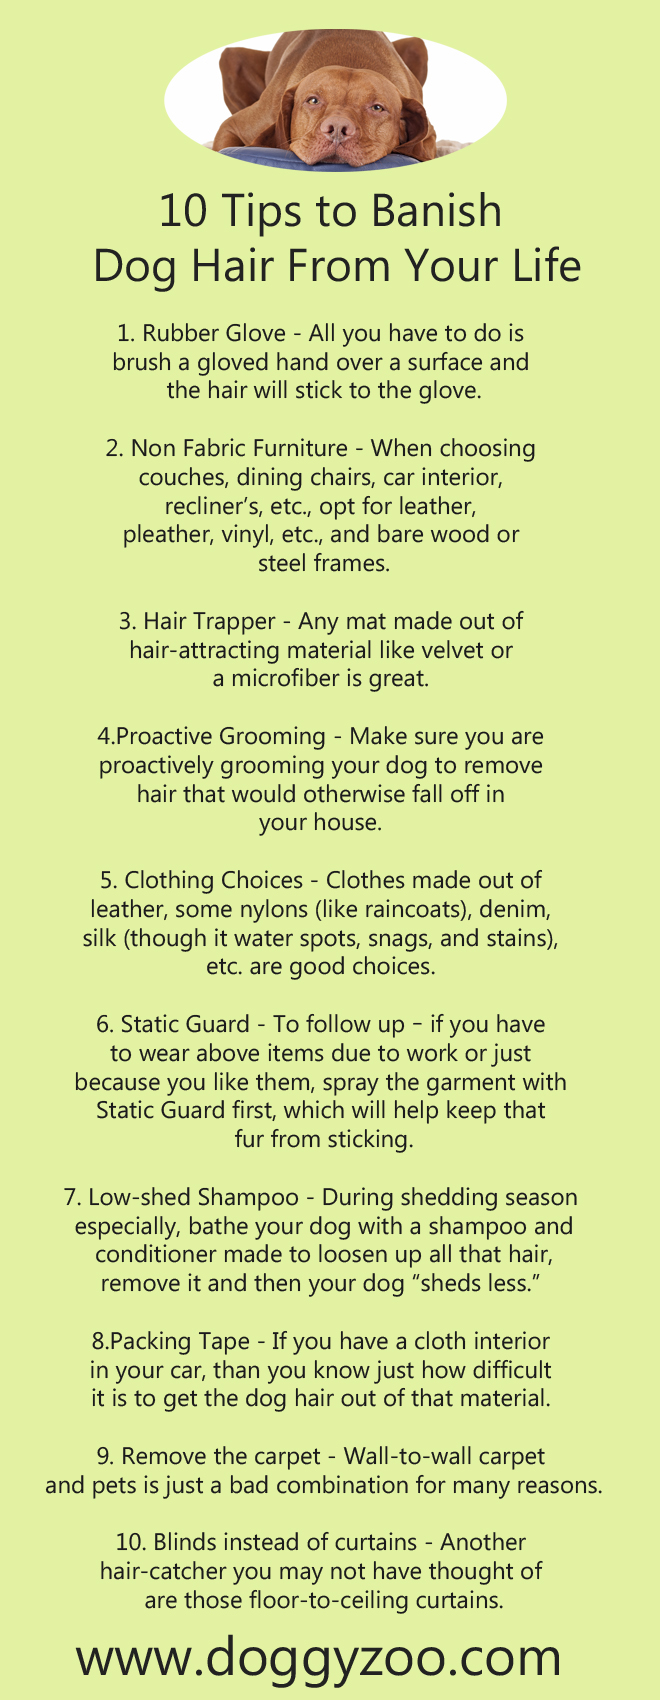 10 Tips To Banish Dog Hair From Your Life Doggyzoo